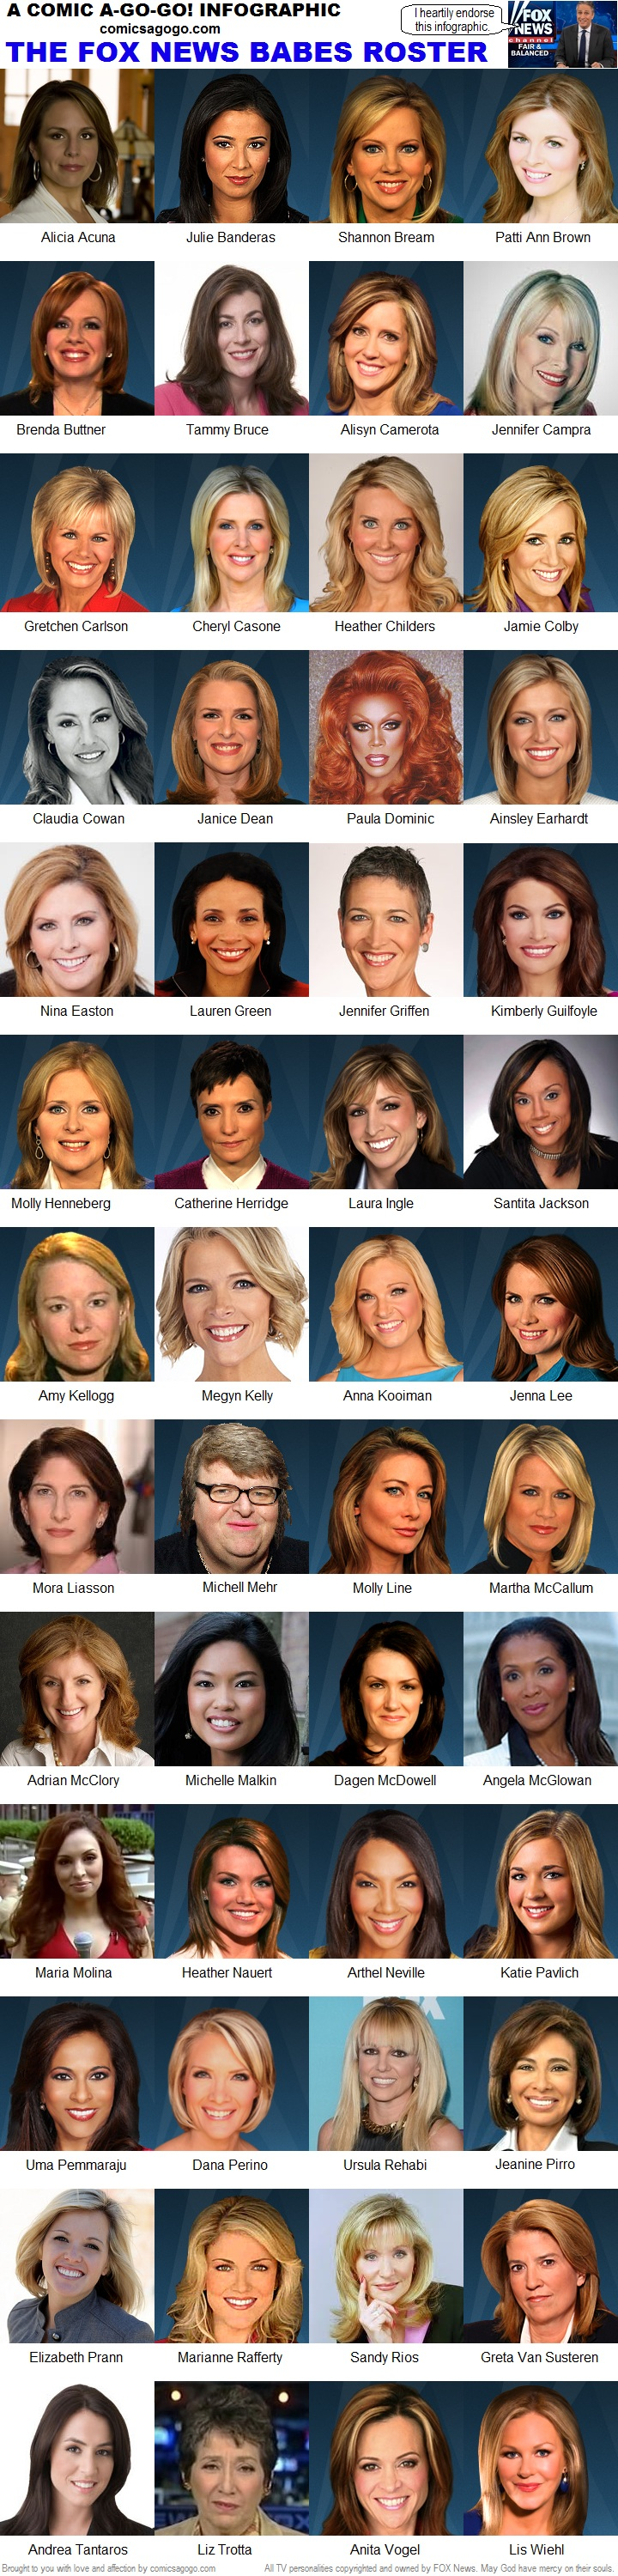 Fox News Women Infographic